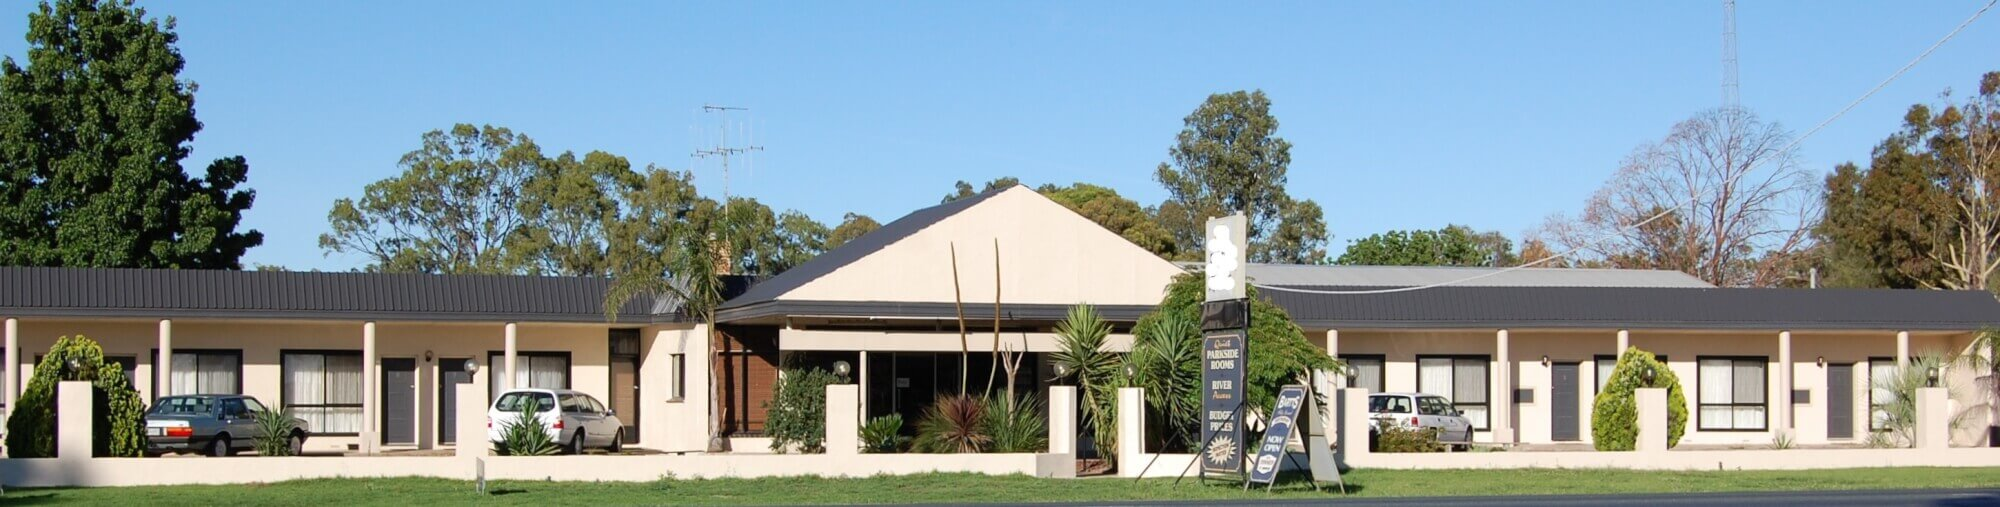 Private Business For Sale Swan Hill 3585 VIC